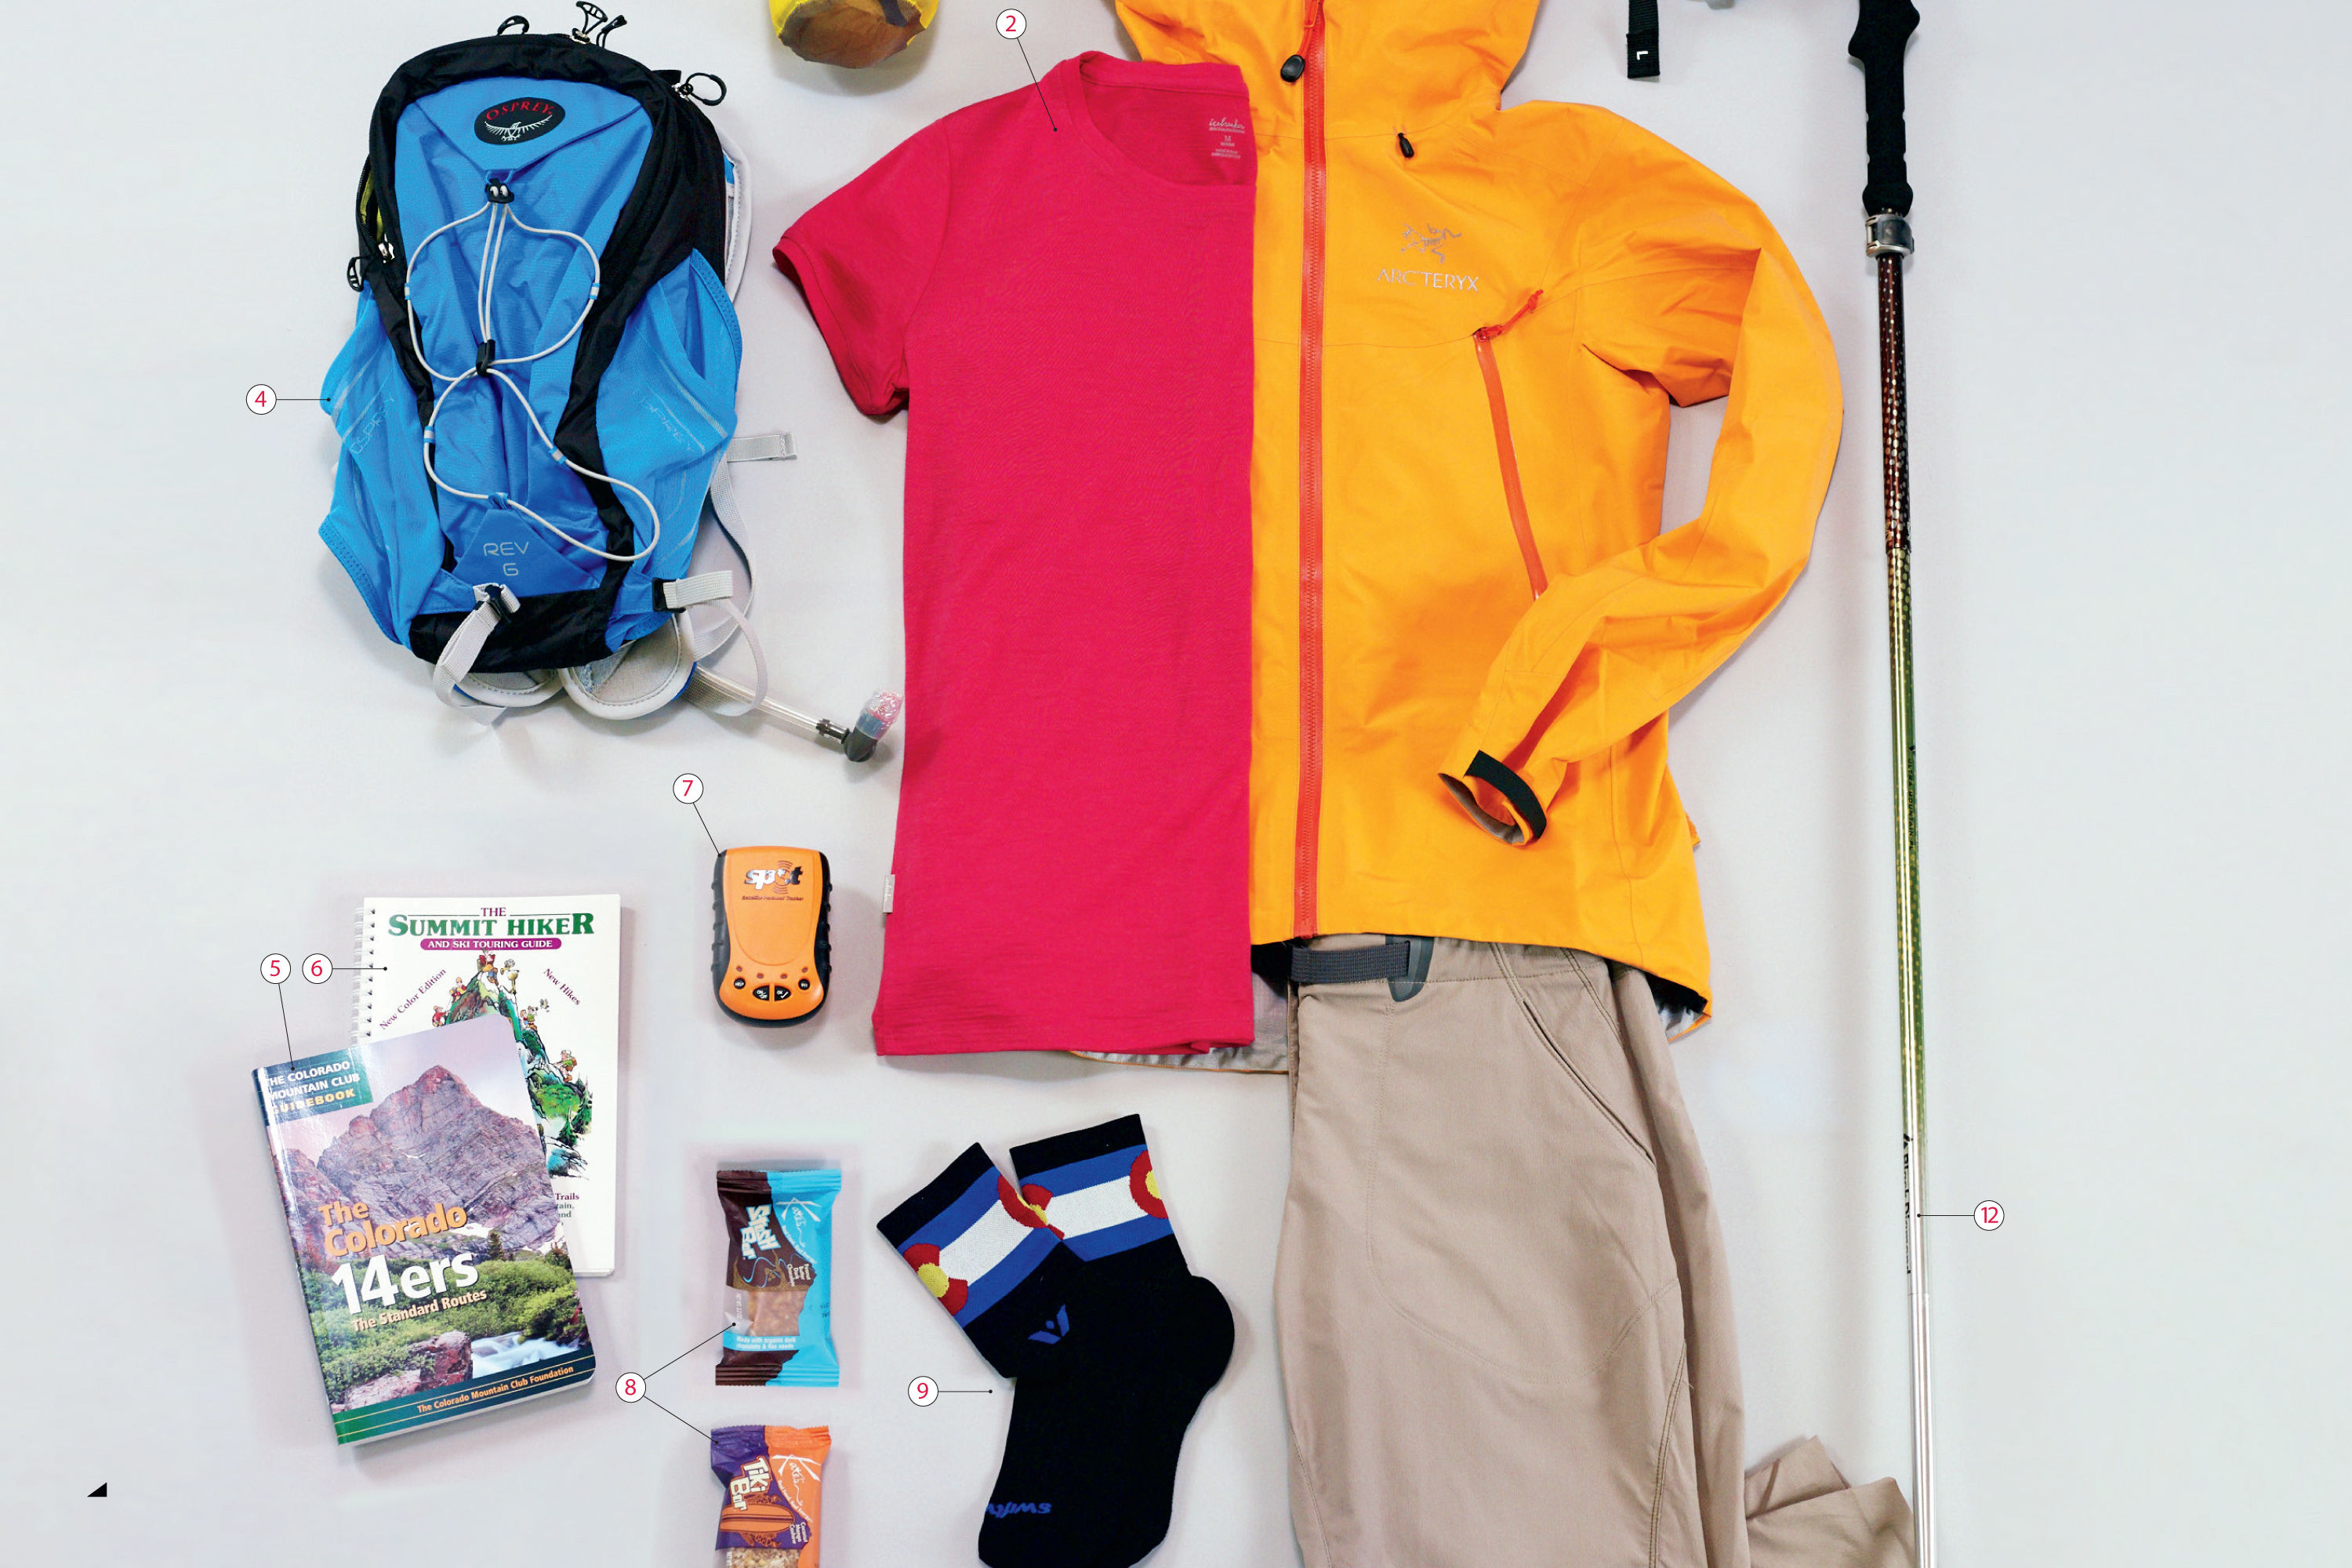 Cosu summer 2014 gear guide hike for her aswb7k